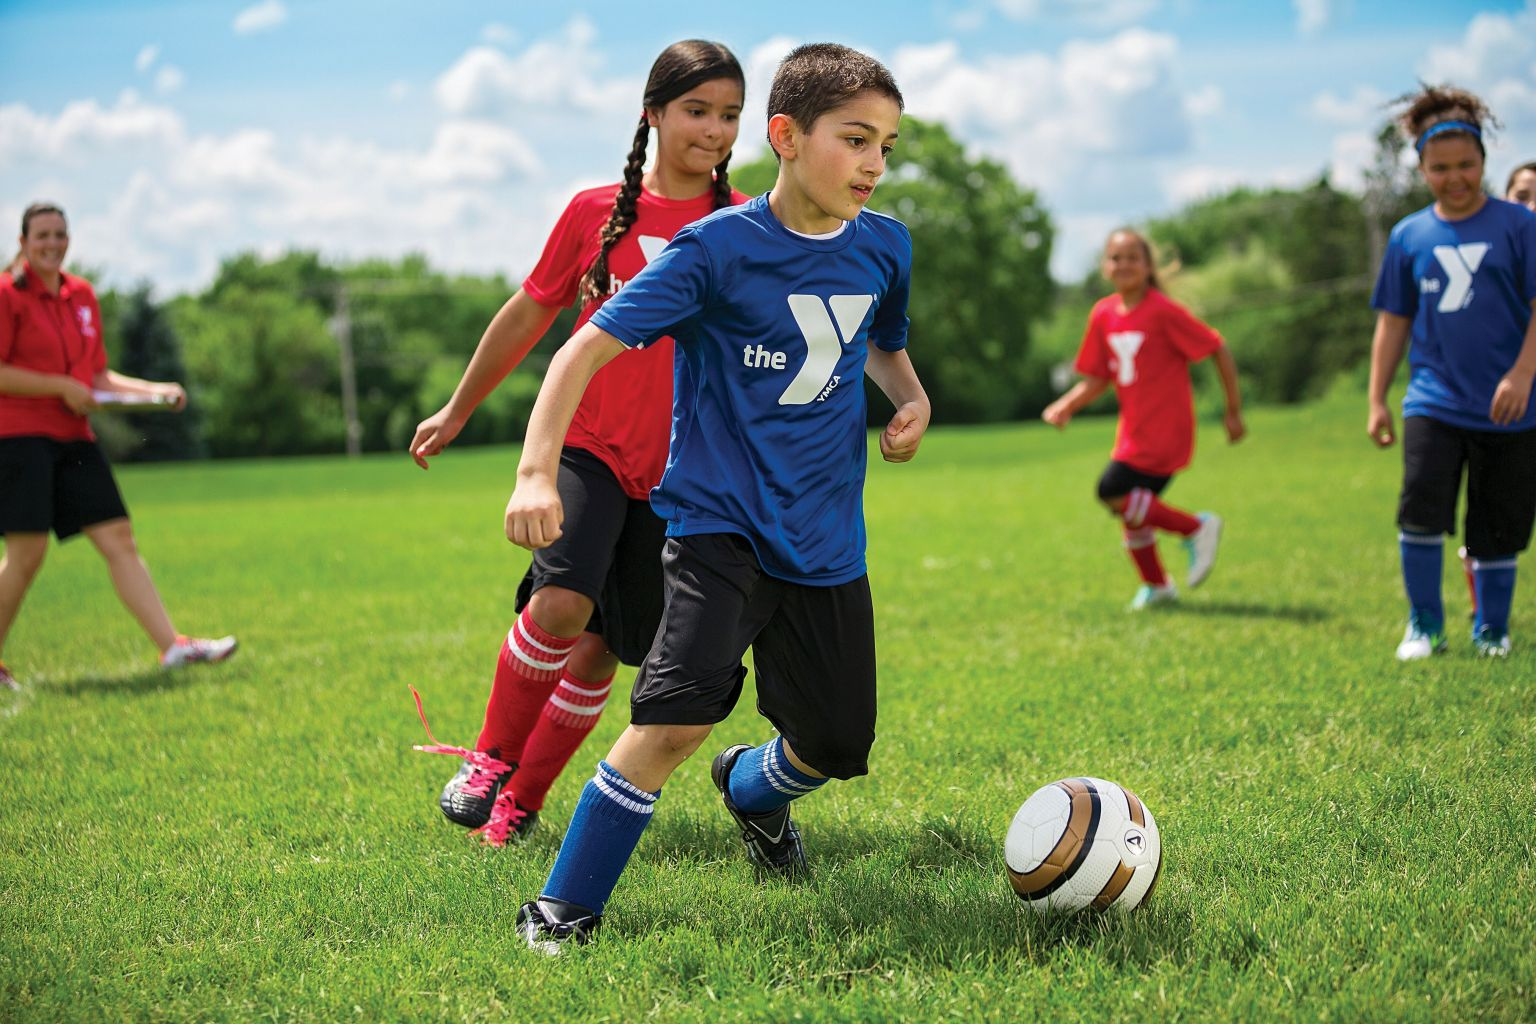 soccer ymca youth age arbor ann sports football sport playing children